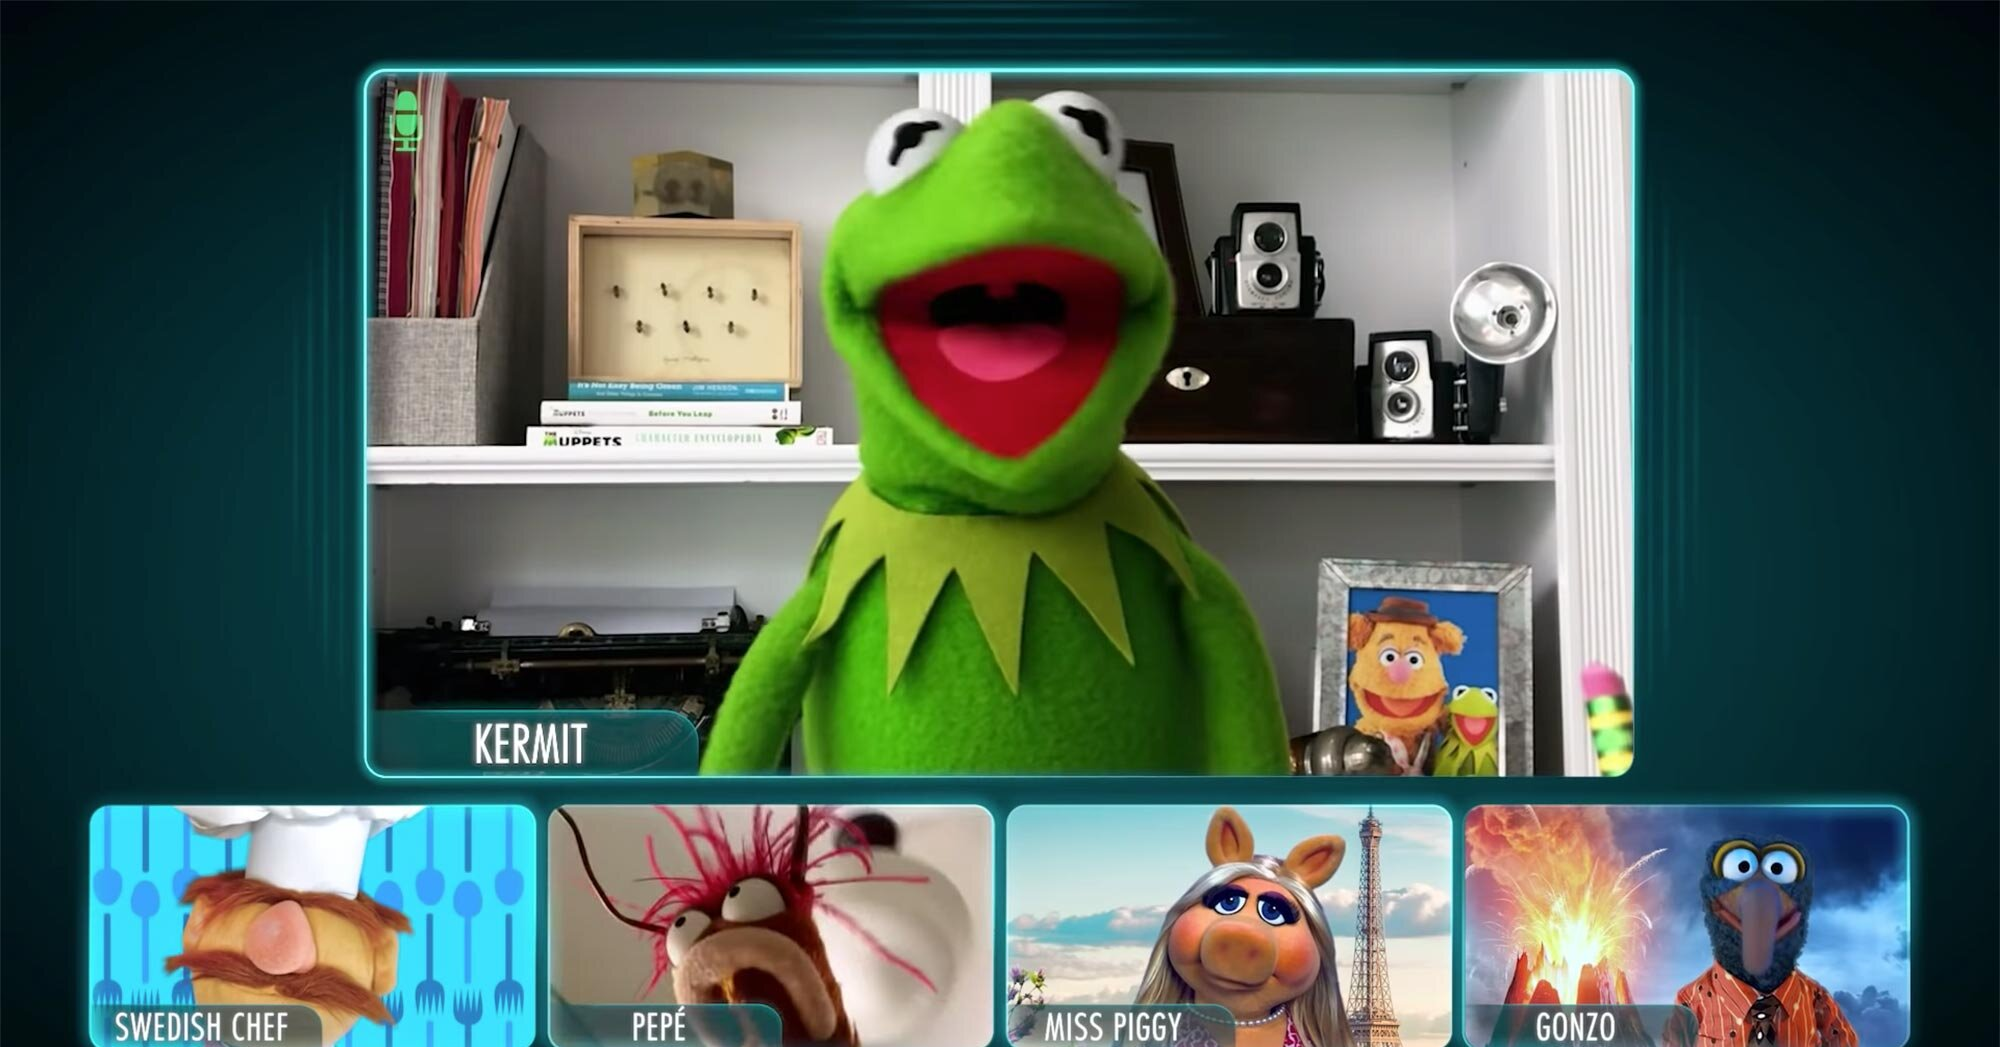 Entertainment News - Even the Muppets are having Zoom meetings in new trailer for Disney+ show thumbnail